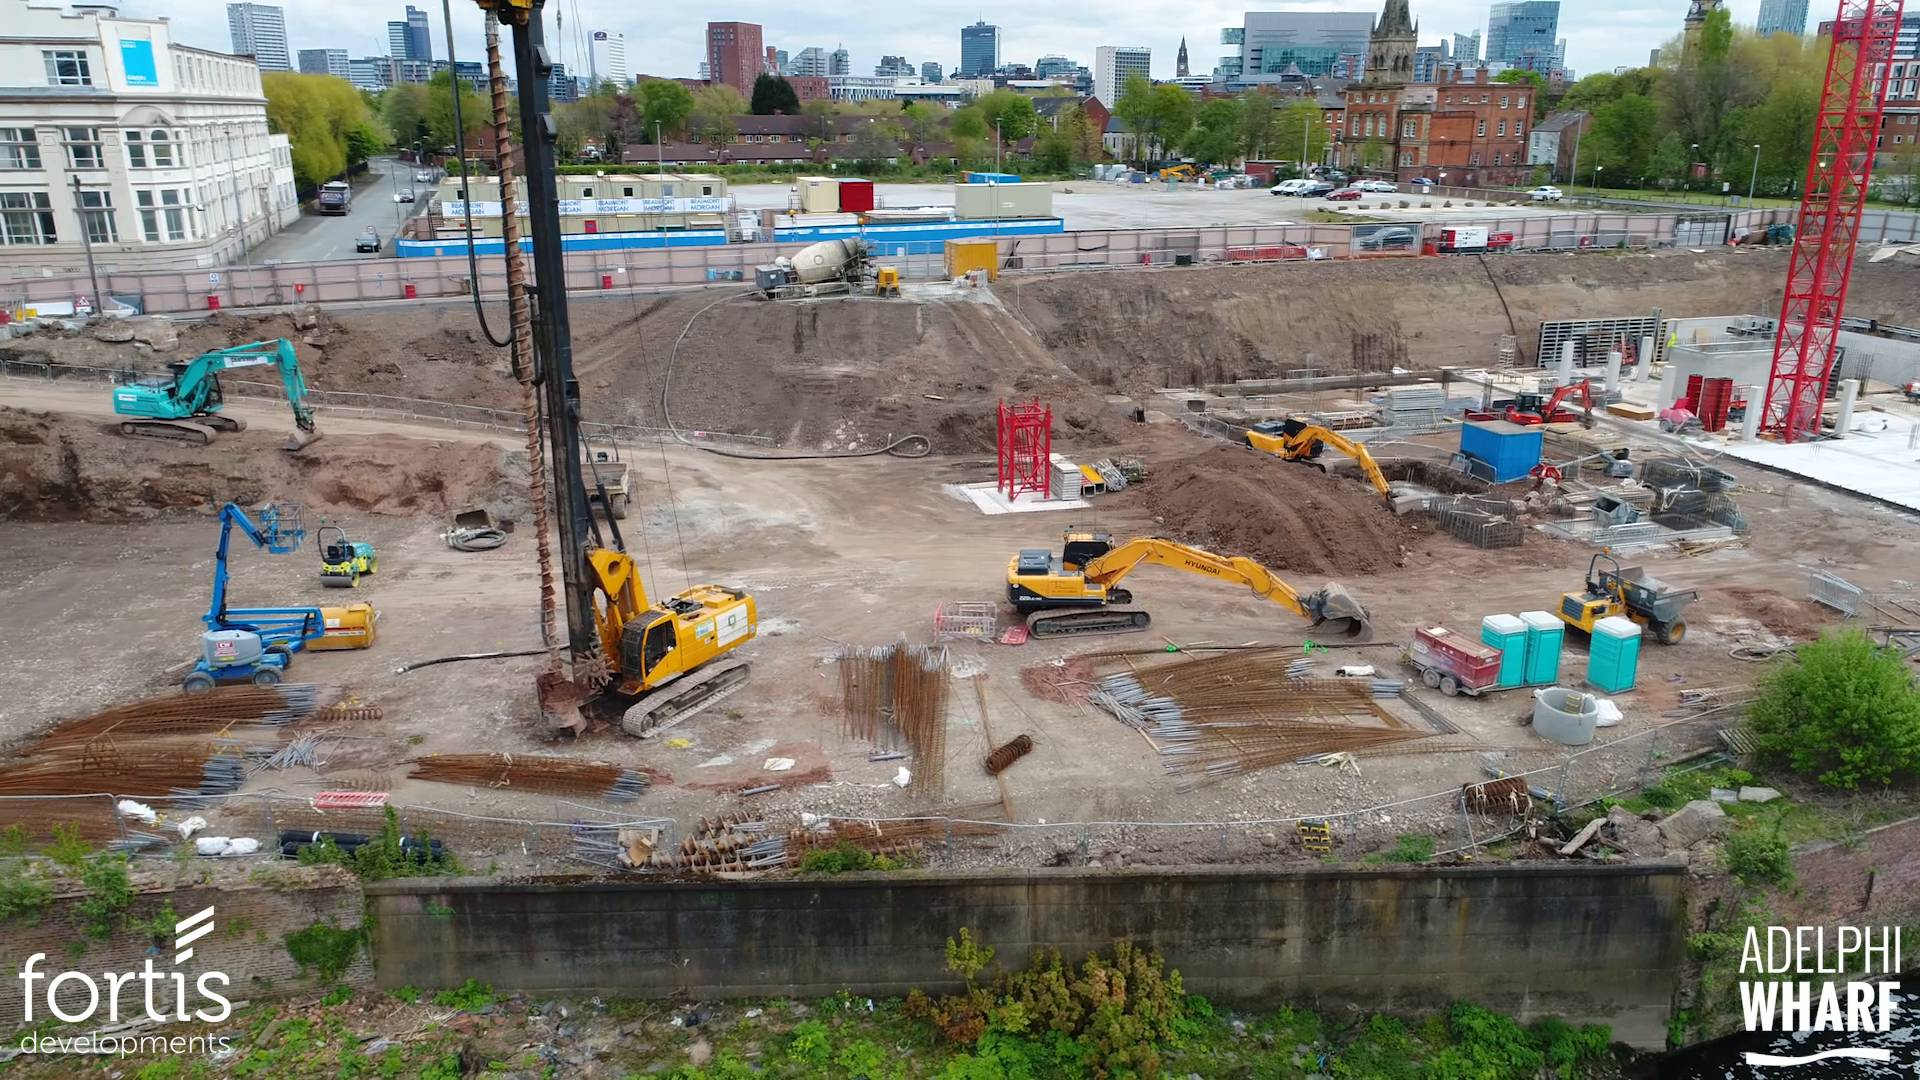 Adelphi Wharf Phase 3 - Drone Footage - May 2017